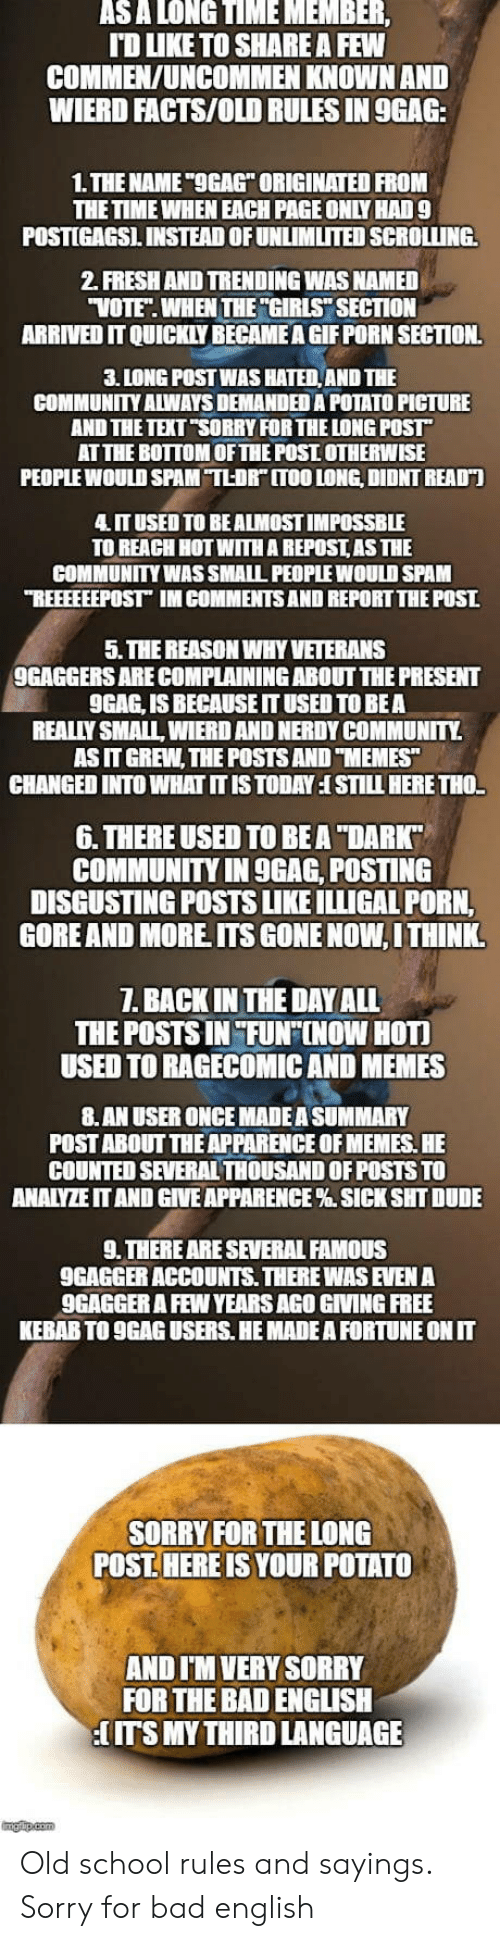 "9gag, Bad, and Community: ASA LONGTIMEMEMBER  TD LIKE TO SHARE A FEW  COMMEN/UNCOMMEN KNOWN AND  WIERD FACTS/OLD RULES IN 9GAG  1.THE NAME ""OGAG ORIGINATED FROM  THE TIME WHEN EACH PAGE ONLY HAD9  POSTIGAGSL INSTEAD OF UNLIMİTED SCROLLING.  2. FRESH AND TRENDING WAS NAMED  VOTE. WHEN THE ""GIRLS SECTION  ARRIVED IT QUICKLY BECAMEA GIF PORN SECTION.  3. LONG POST WAS HATED AND THE  COMMUNITY ALWAYS DEMAND印A POTATO PICTURE  AND THETEXT ""SORRY FOR THE LONG POST  AT THE BOTTOM OFTHE POSI OTHERWISE  PEOPLE WOULD SPAM TLDR"" ITOO LONG, DIDNT READT  IT USED TO BE ALMOST IMPOSSBLE  TO REACH HOT WITH A REPOSTAS THE  COMMUNITY WAS SMALL PEOPLE WOULD SPAM  REEEEEEPOST IM COMMENTS AND REPORT THE POST  5. THE REASON WHY VETERANS  9GAGGERS ARE COMPLAINING ABOUT THE PRESENT  9GAG, IS BECAUSE IT USED TO BEA  REALLY SMALL, WIERD AND NERDY COMMUNITY.  AS IT GREW, THE POSTS AND TMEMES  CHANGED INTO WHAT IT IS TODAY I STILL HERE THO.  6. THERE USED TO BEA ""DARK  COMMUNITY IN 9GAG, POSTING  DISGUSTING POSTS LIKE ILLIGAL PORN,  GOREAND MORE ITS GONE NOW,I THINK  1. BACK IN THE DAY ALL  THE POSTS IN FUNF[NOW HOTI  USED TO RAGECOMIC AND MEMES  8.AN USER ONCE MADE A SUMMARY  POST ABOUT THE APPARENCE OF MEMES. HE  COUNTED SEVERAL THOUSAND OF POSTS TO  ANALYZEIT AND GIVE APPARENCE % SICK SHT DUDE  9. THERE ARE SEVERAL FAMOUS  9GAGGER ACCOUNTS. THERE WAS EVEN A  9GAGGER A FEW YEARS AGO GIVING FREE  KEBAB TO 9GAG USERS. HE MADE A FORTUNE ON IT  SORRY FOR THE LONG  POST. HERE IS YOUR POTATO  AND I'M VERY SORRY  FOR THE BAD ENGLISH  ITS MY THIRD LANGUAGE Old school rules and sayings. Sorry for bad english"